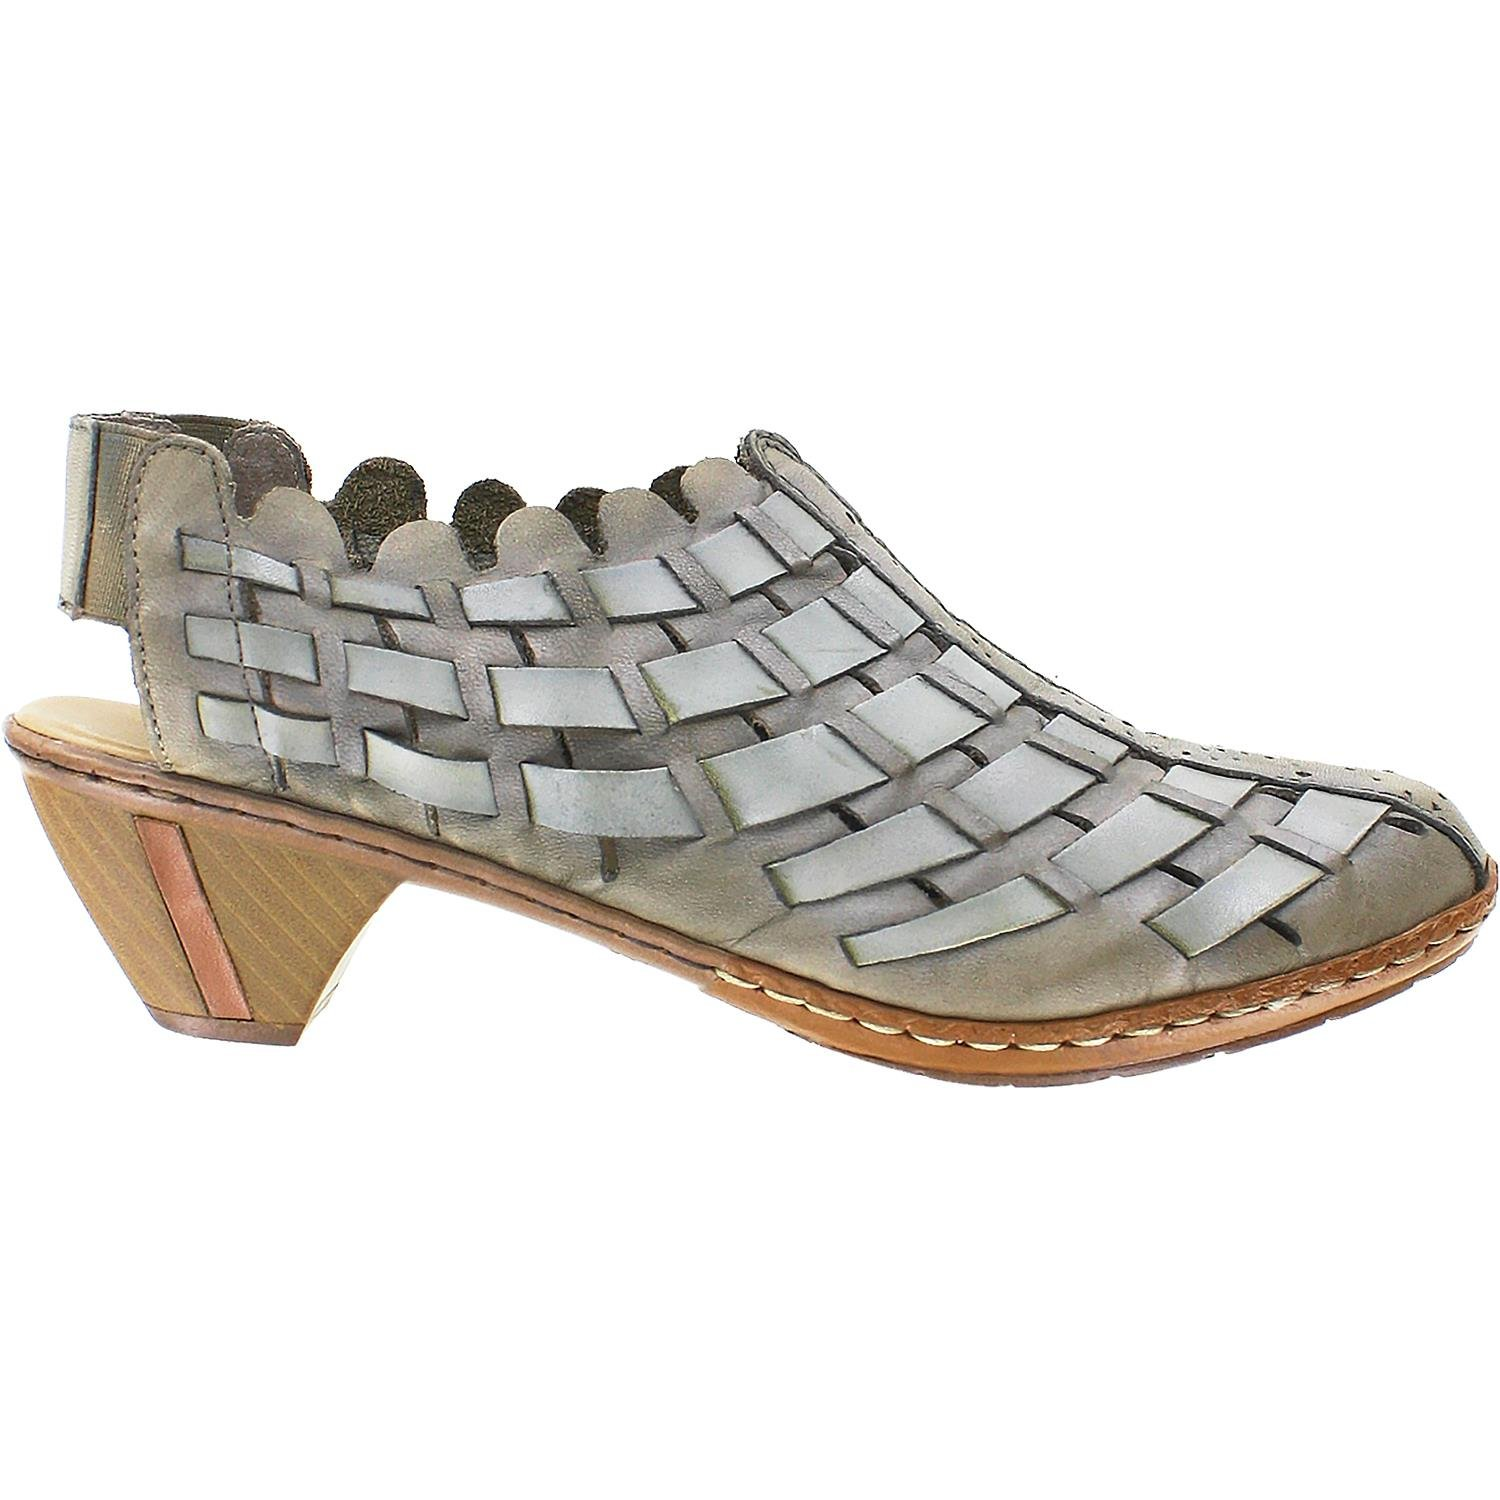 Women's Rieker, Sina woven leather casual style TAUPE 42 M